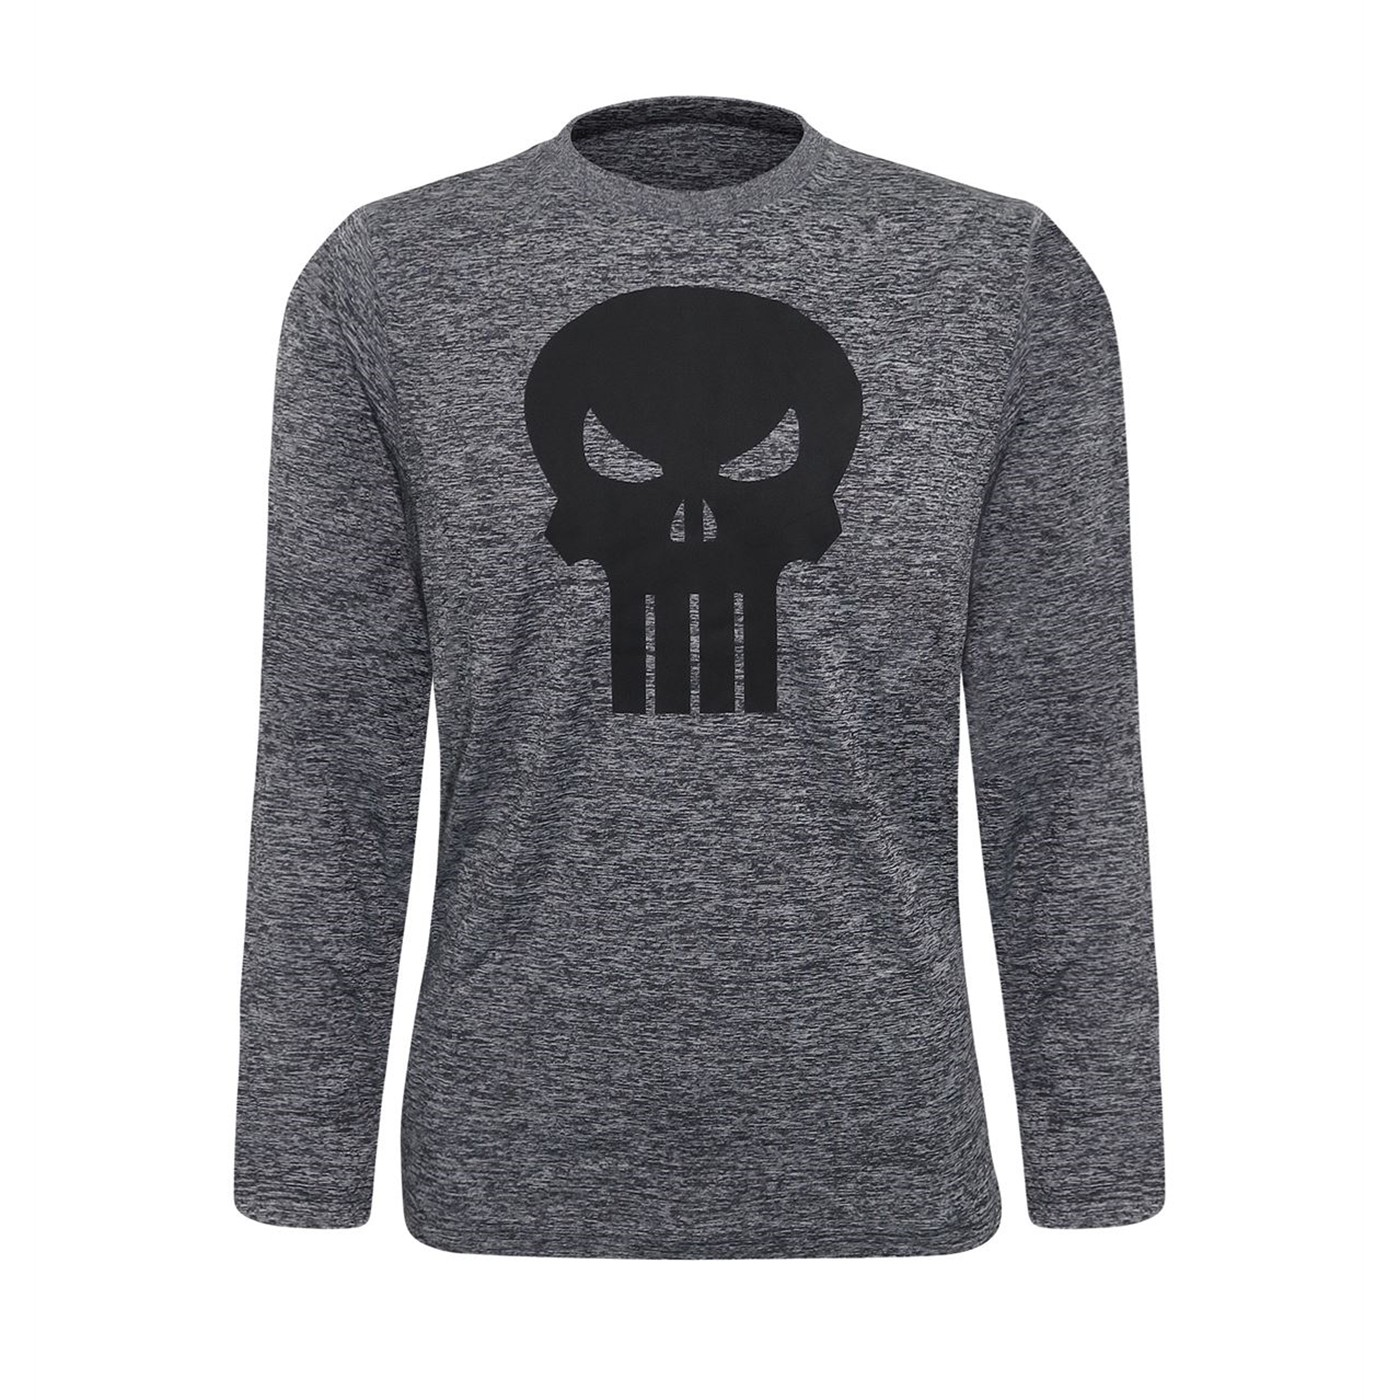 Punisher Heather Charcoal Men's Long Sleeve T-Shirt